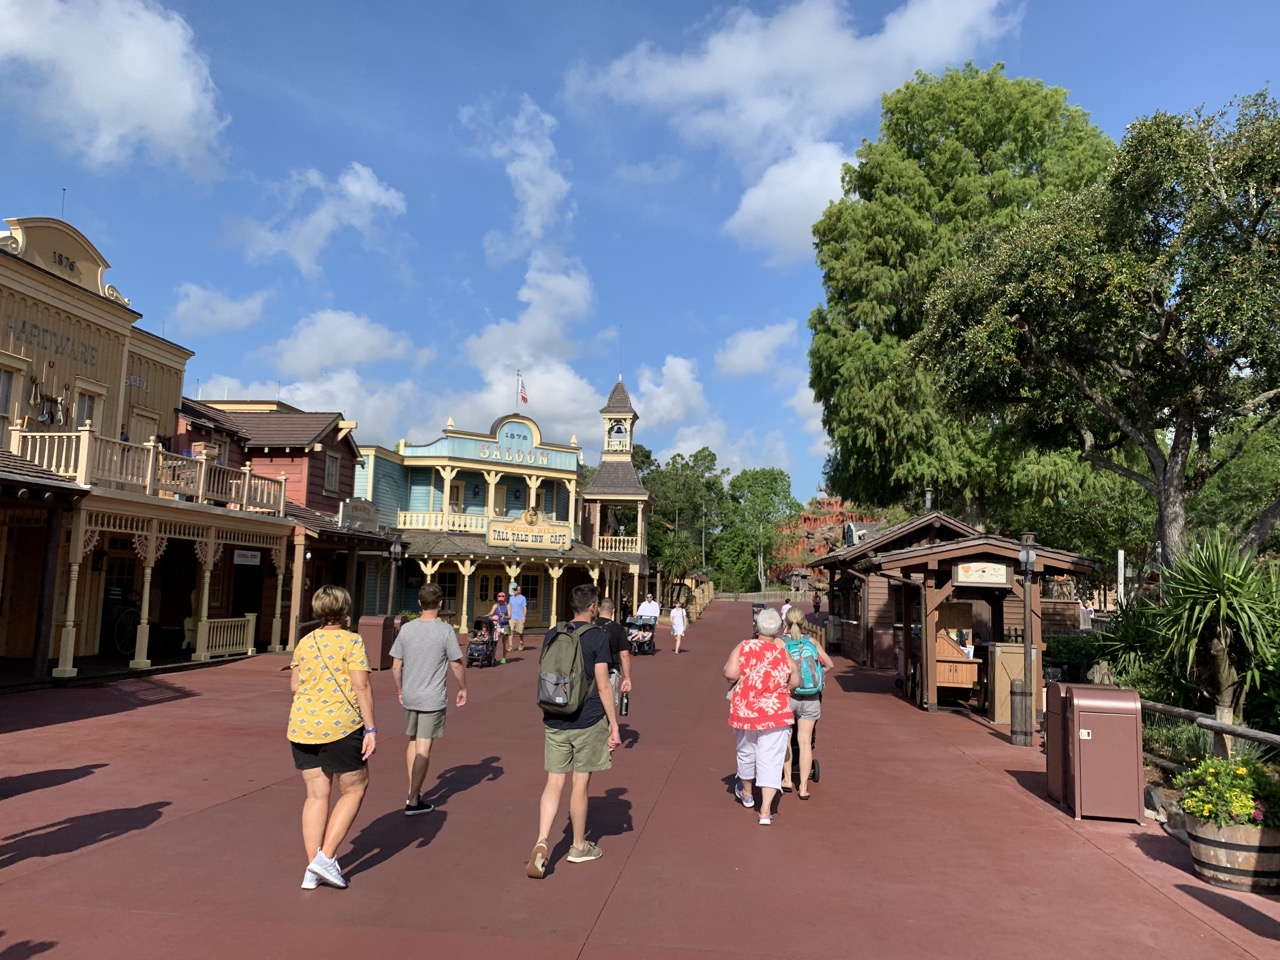 disney world trip report early summer 2019 day five 27 western side.jpeg